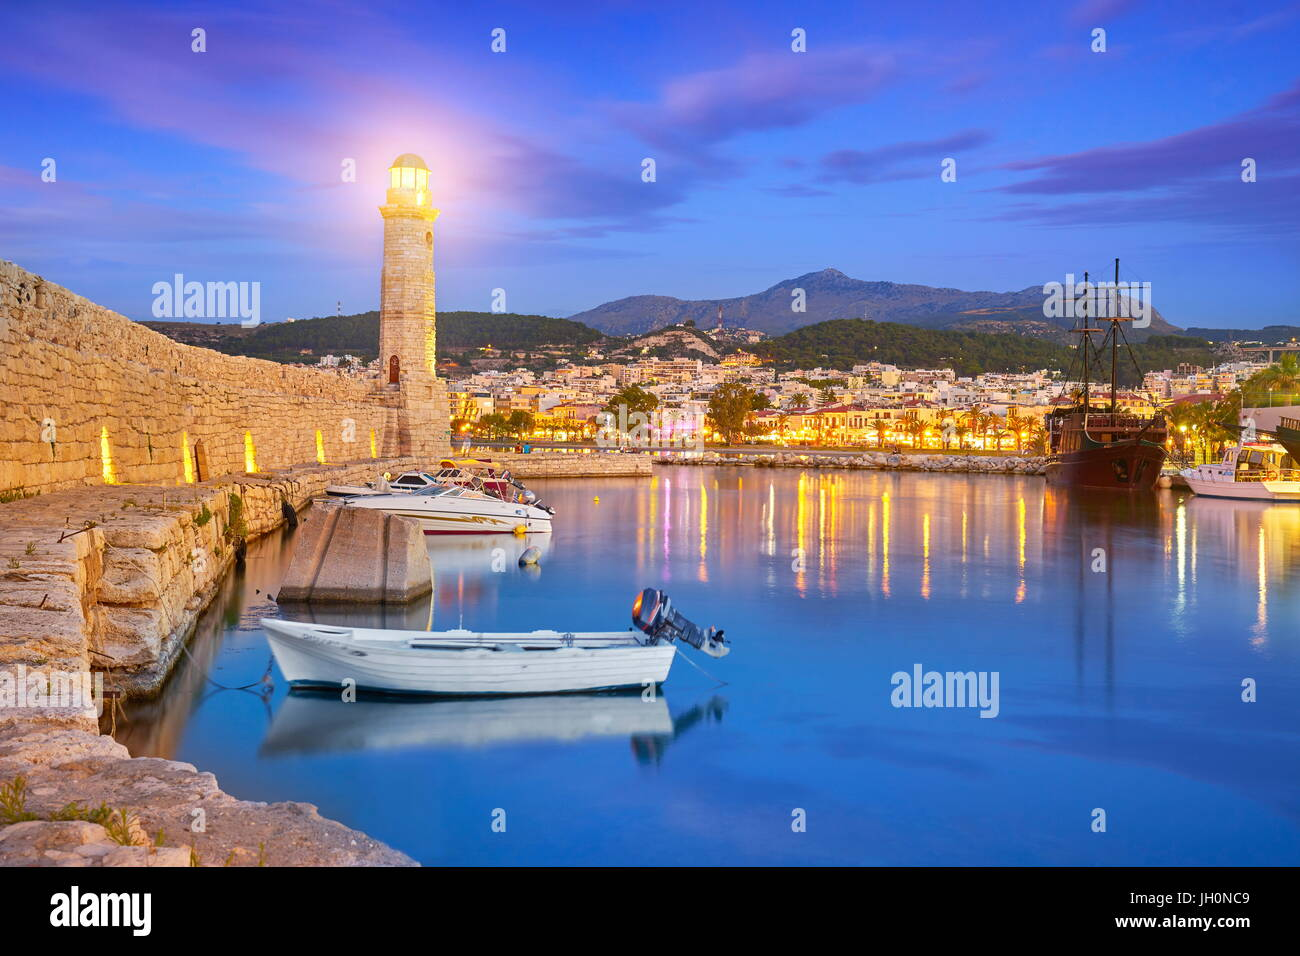 Crete Island - Lighthouse at Old Venetian Port, Rethymno, Greece - Stock Image